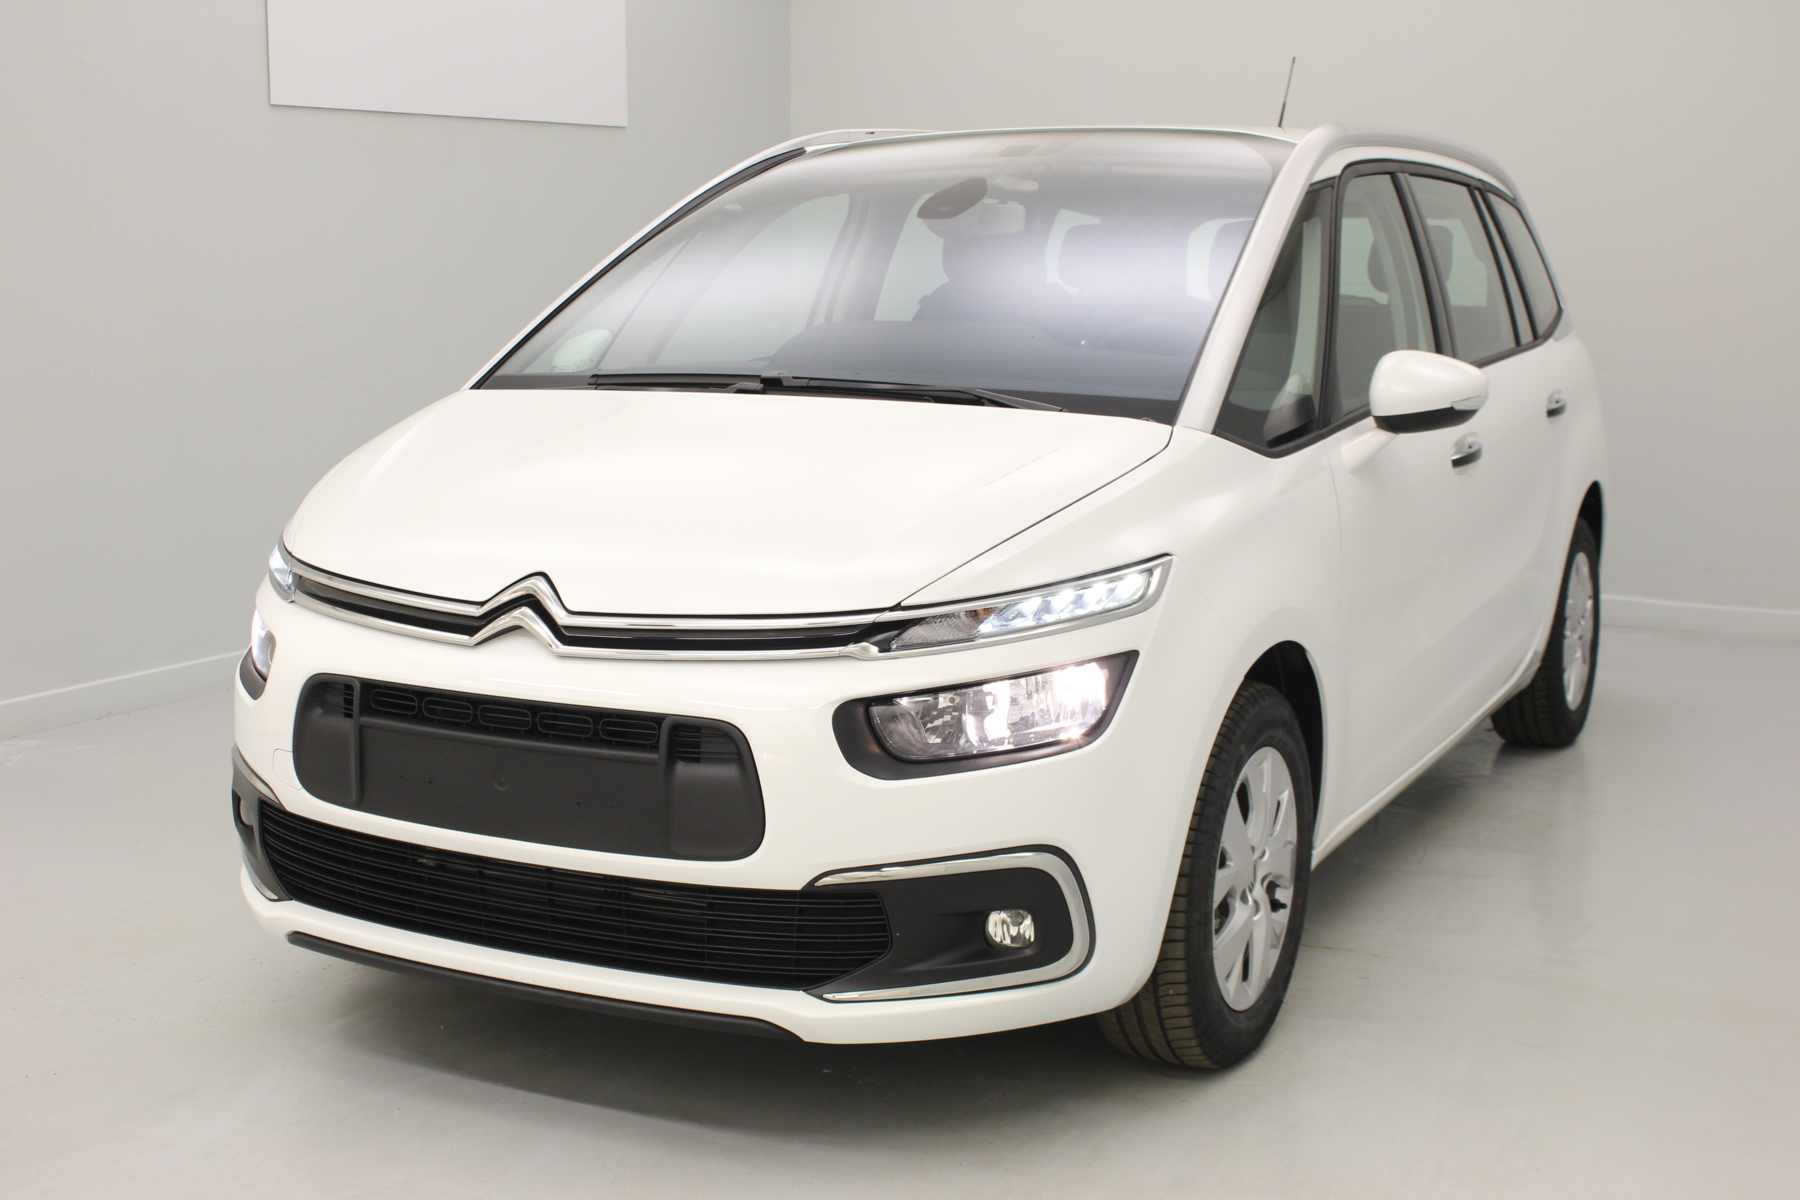 CITROEN Grand C4 Picasso BlueHDi 120 S&S EAT6 Feel Blanc Banquise + Accès démarrage mains libres + Alarme avec options